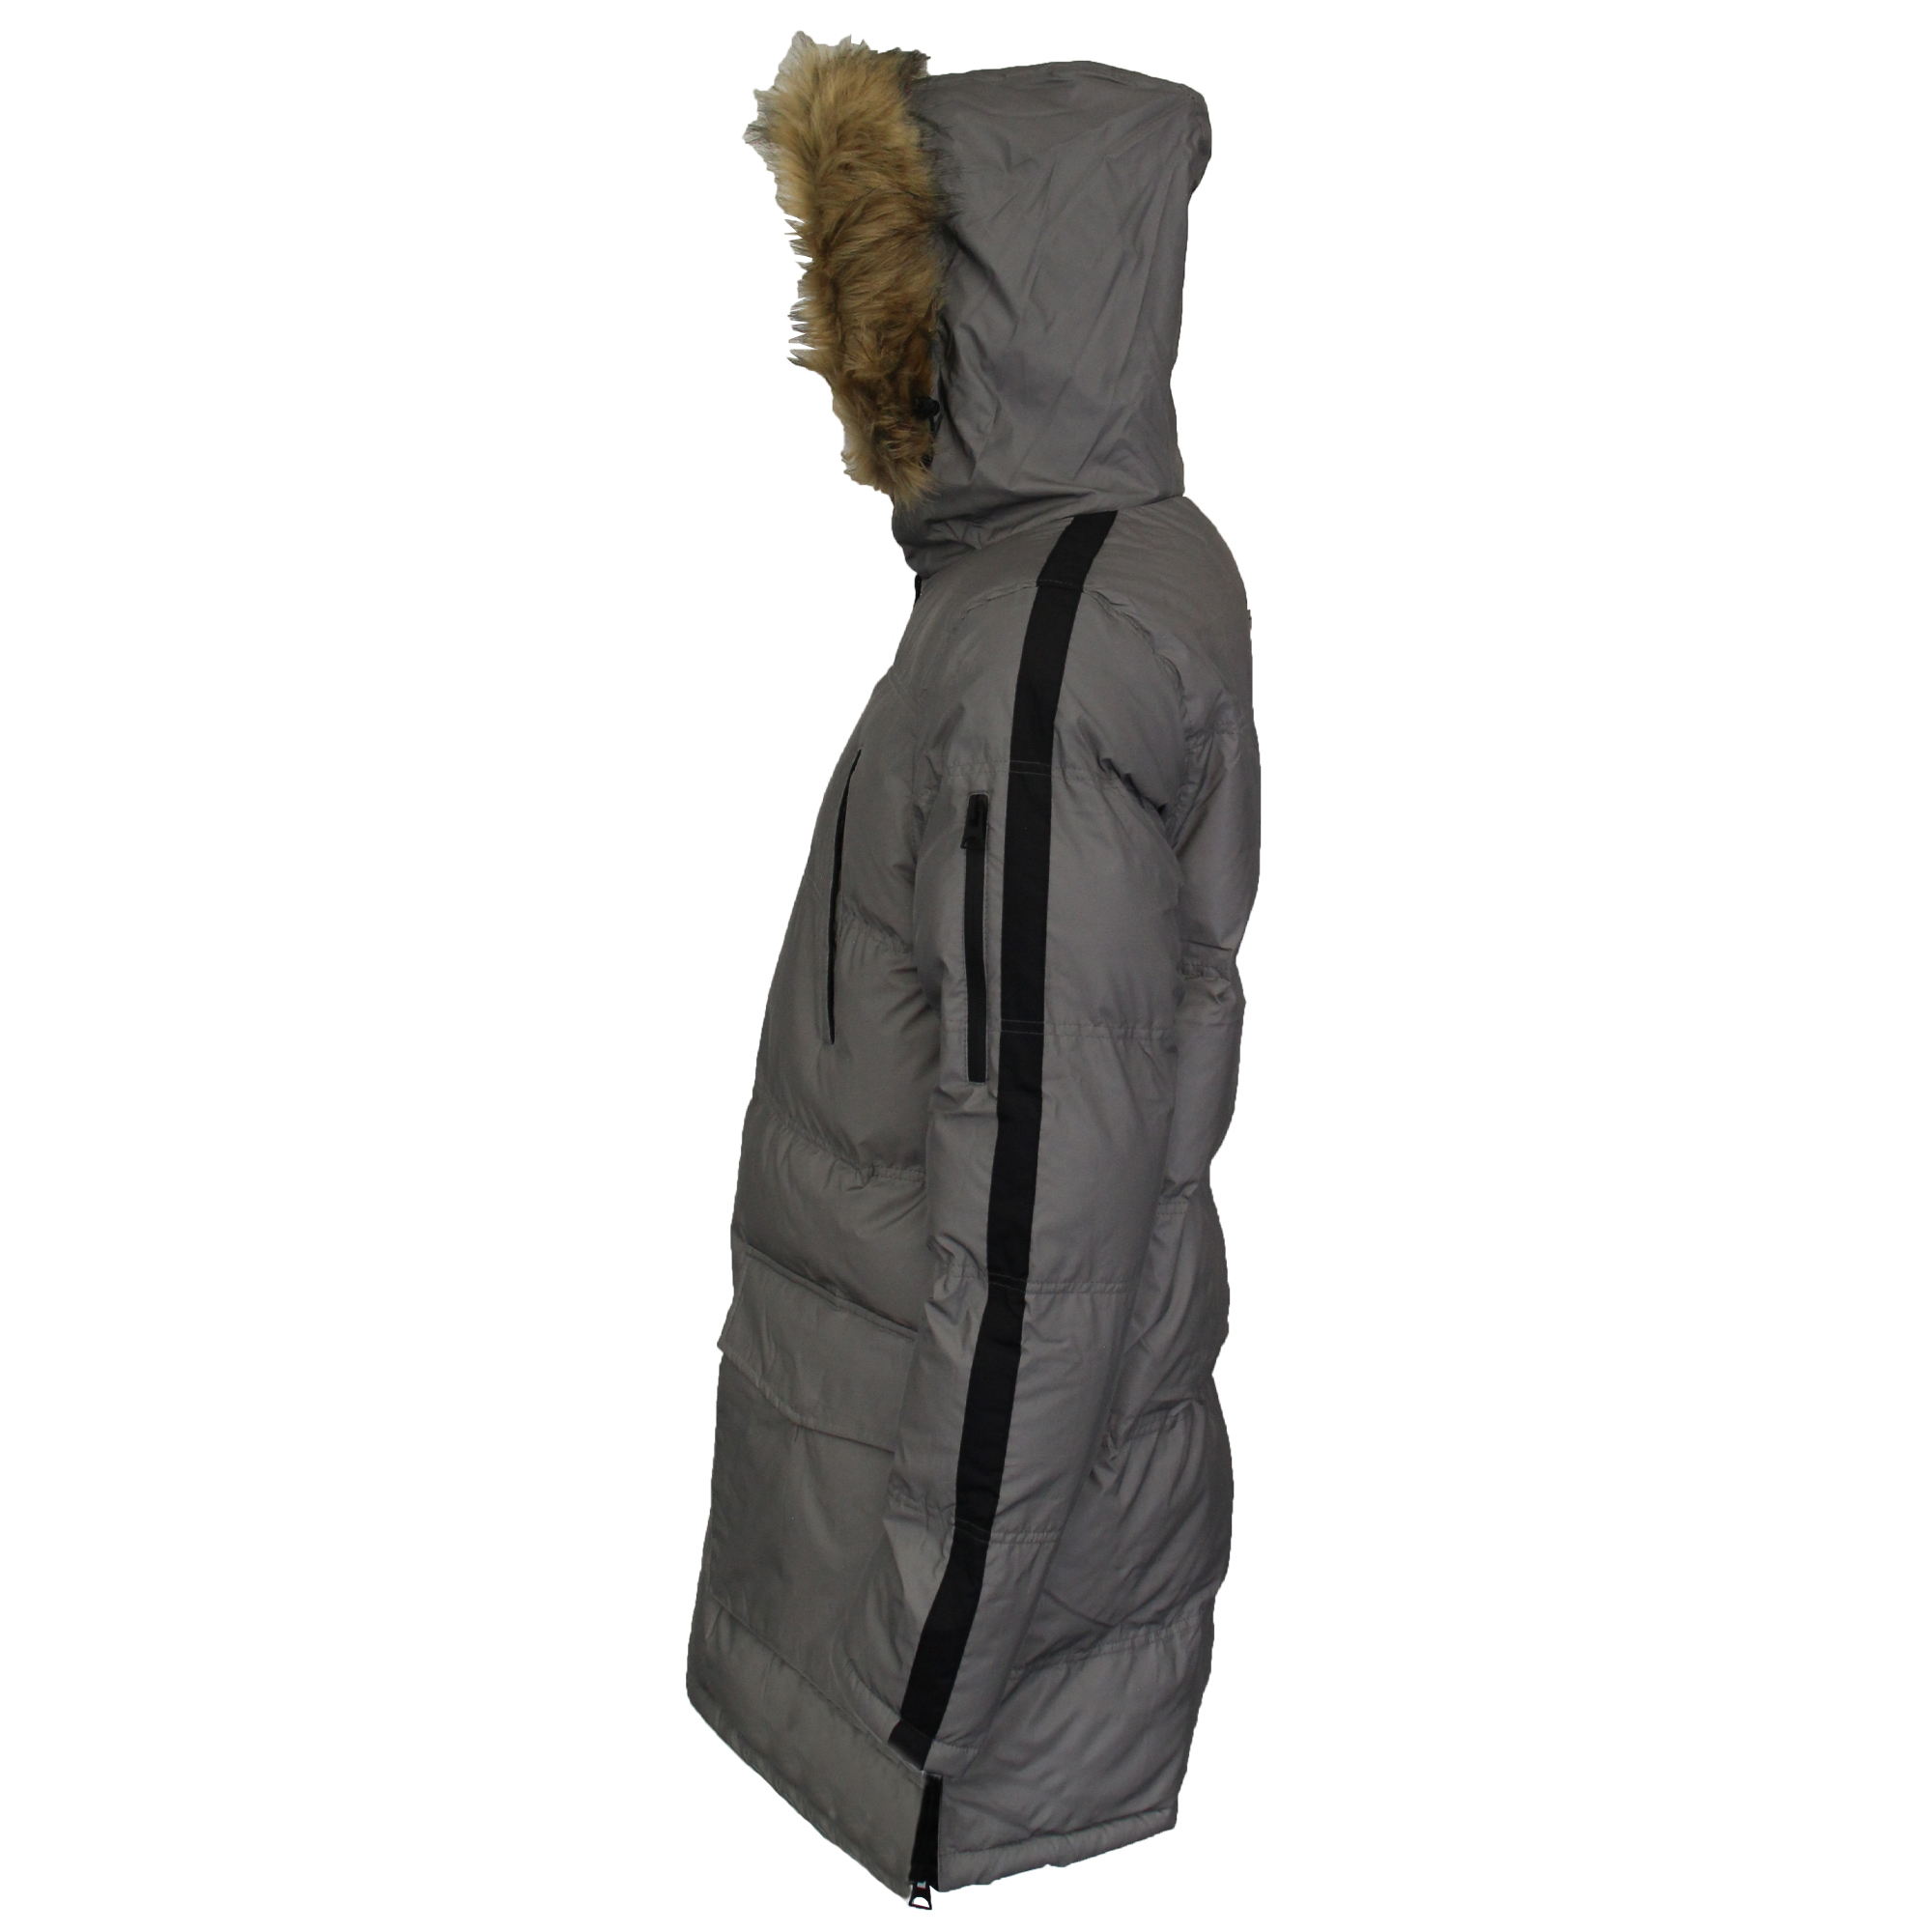 Mens-Reflective-Long-Bubble-Parka-Jacket-Brave-Soul-Coat-Hooded-Padded-Winter thumbnail 9